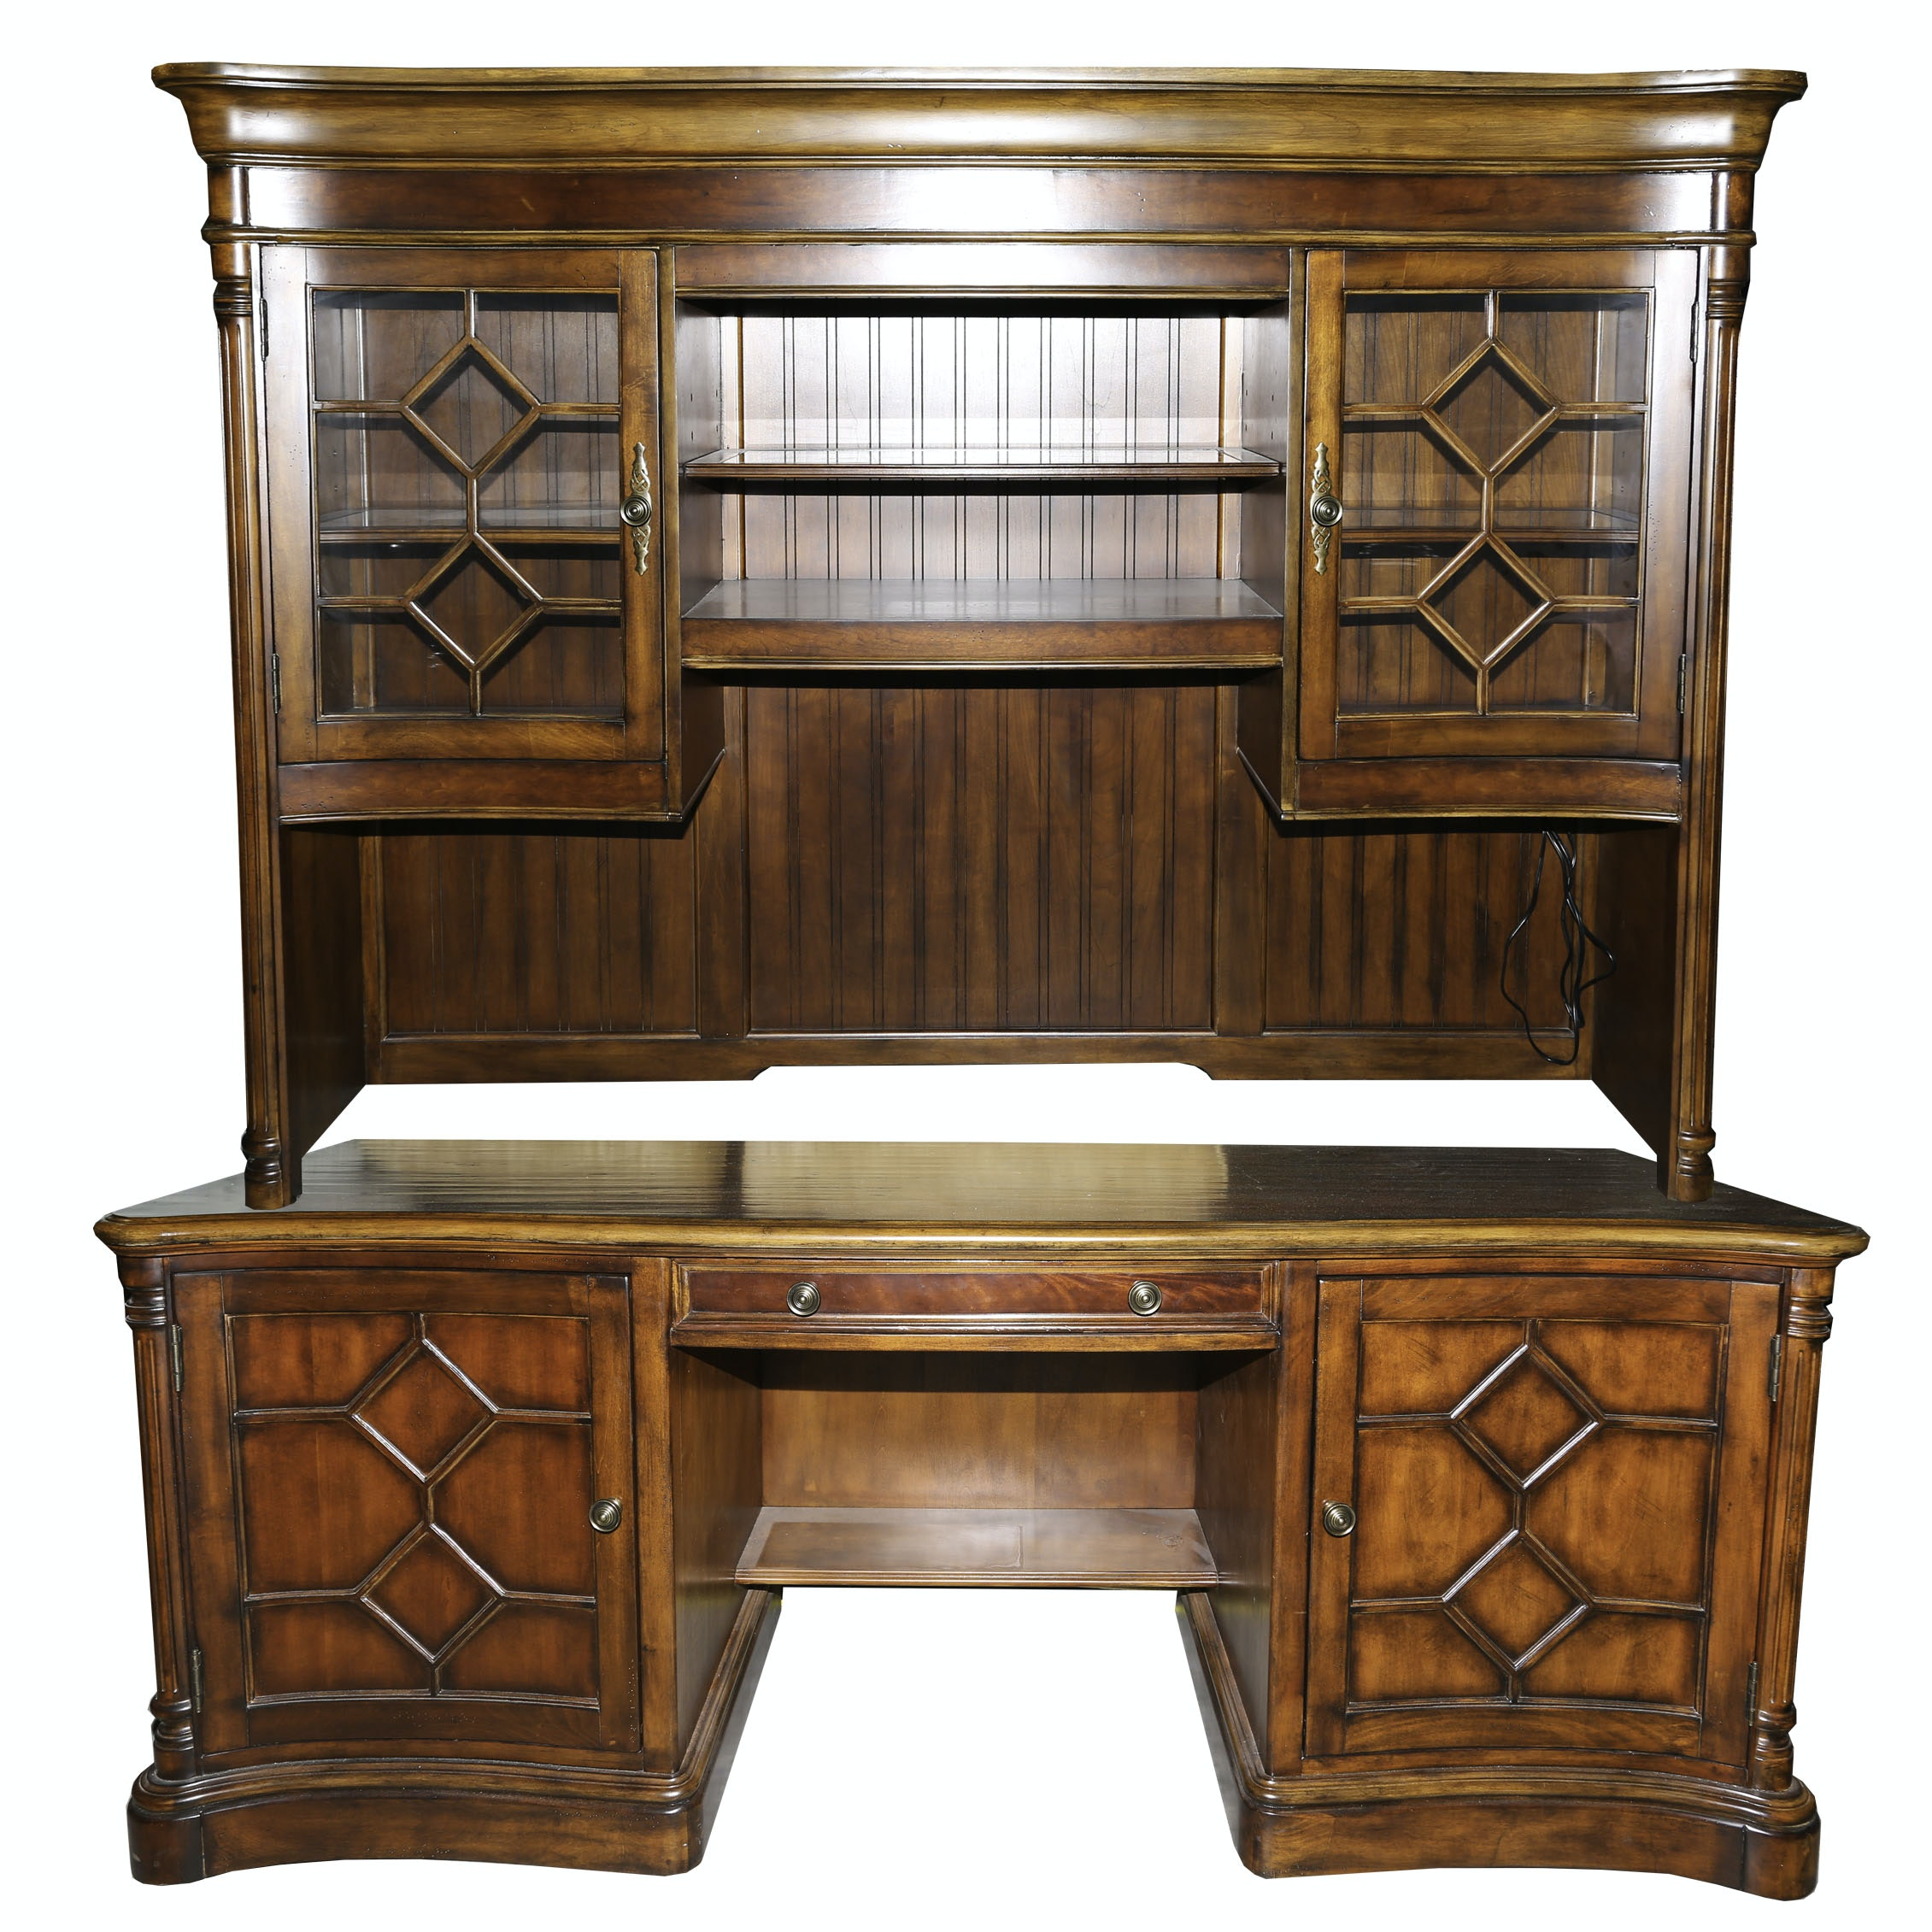 Desk with Hutch by Seven Seas by Hooker Furniture